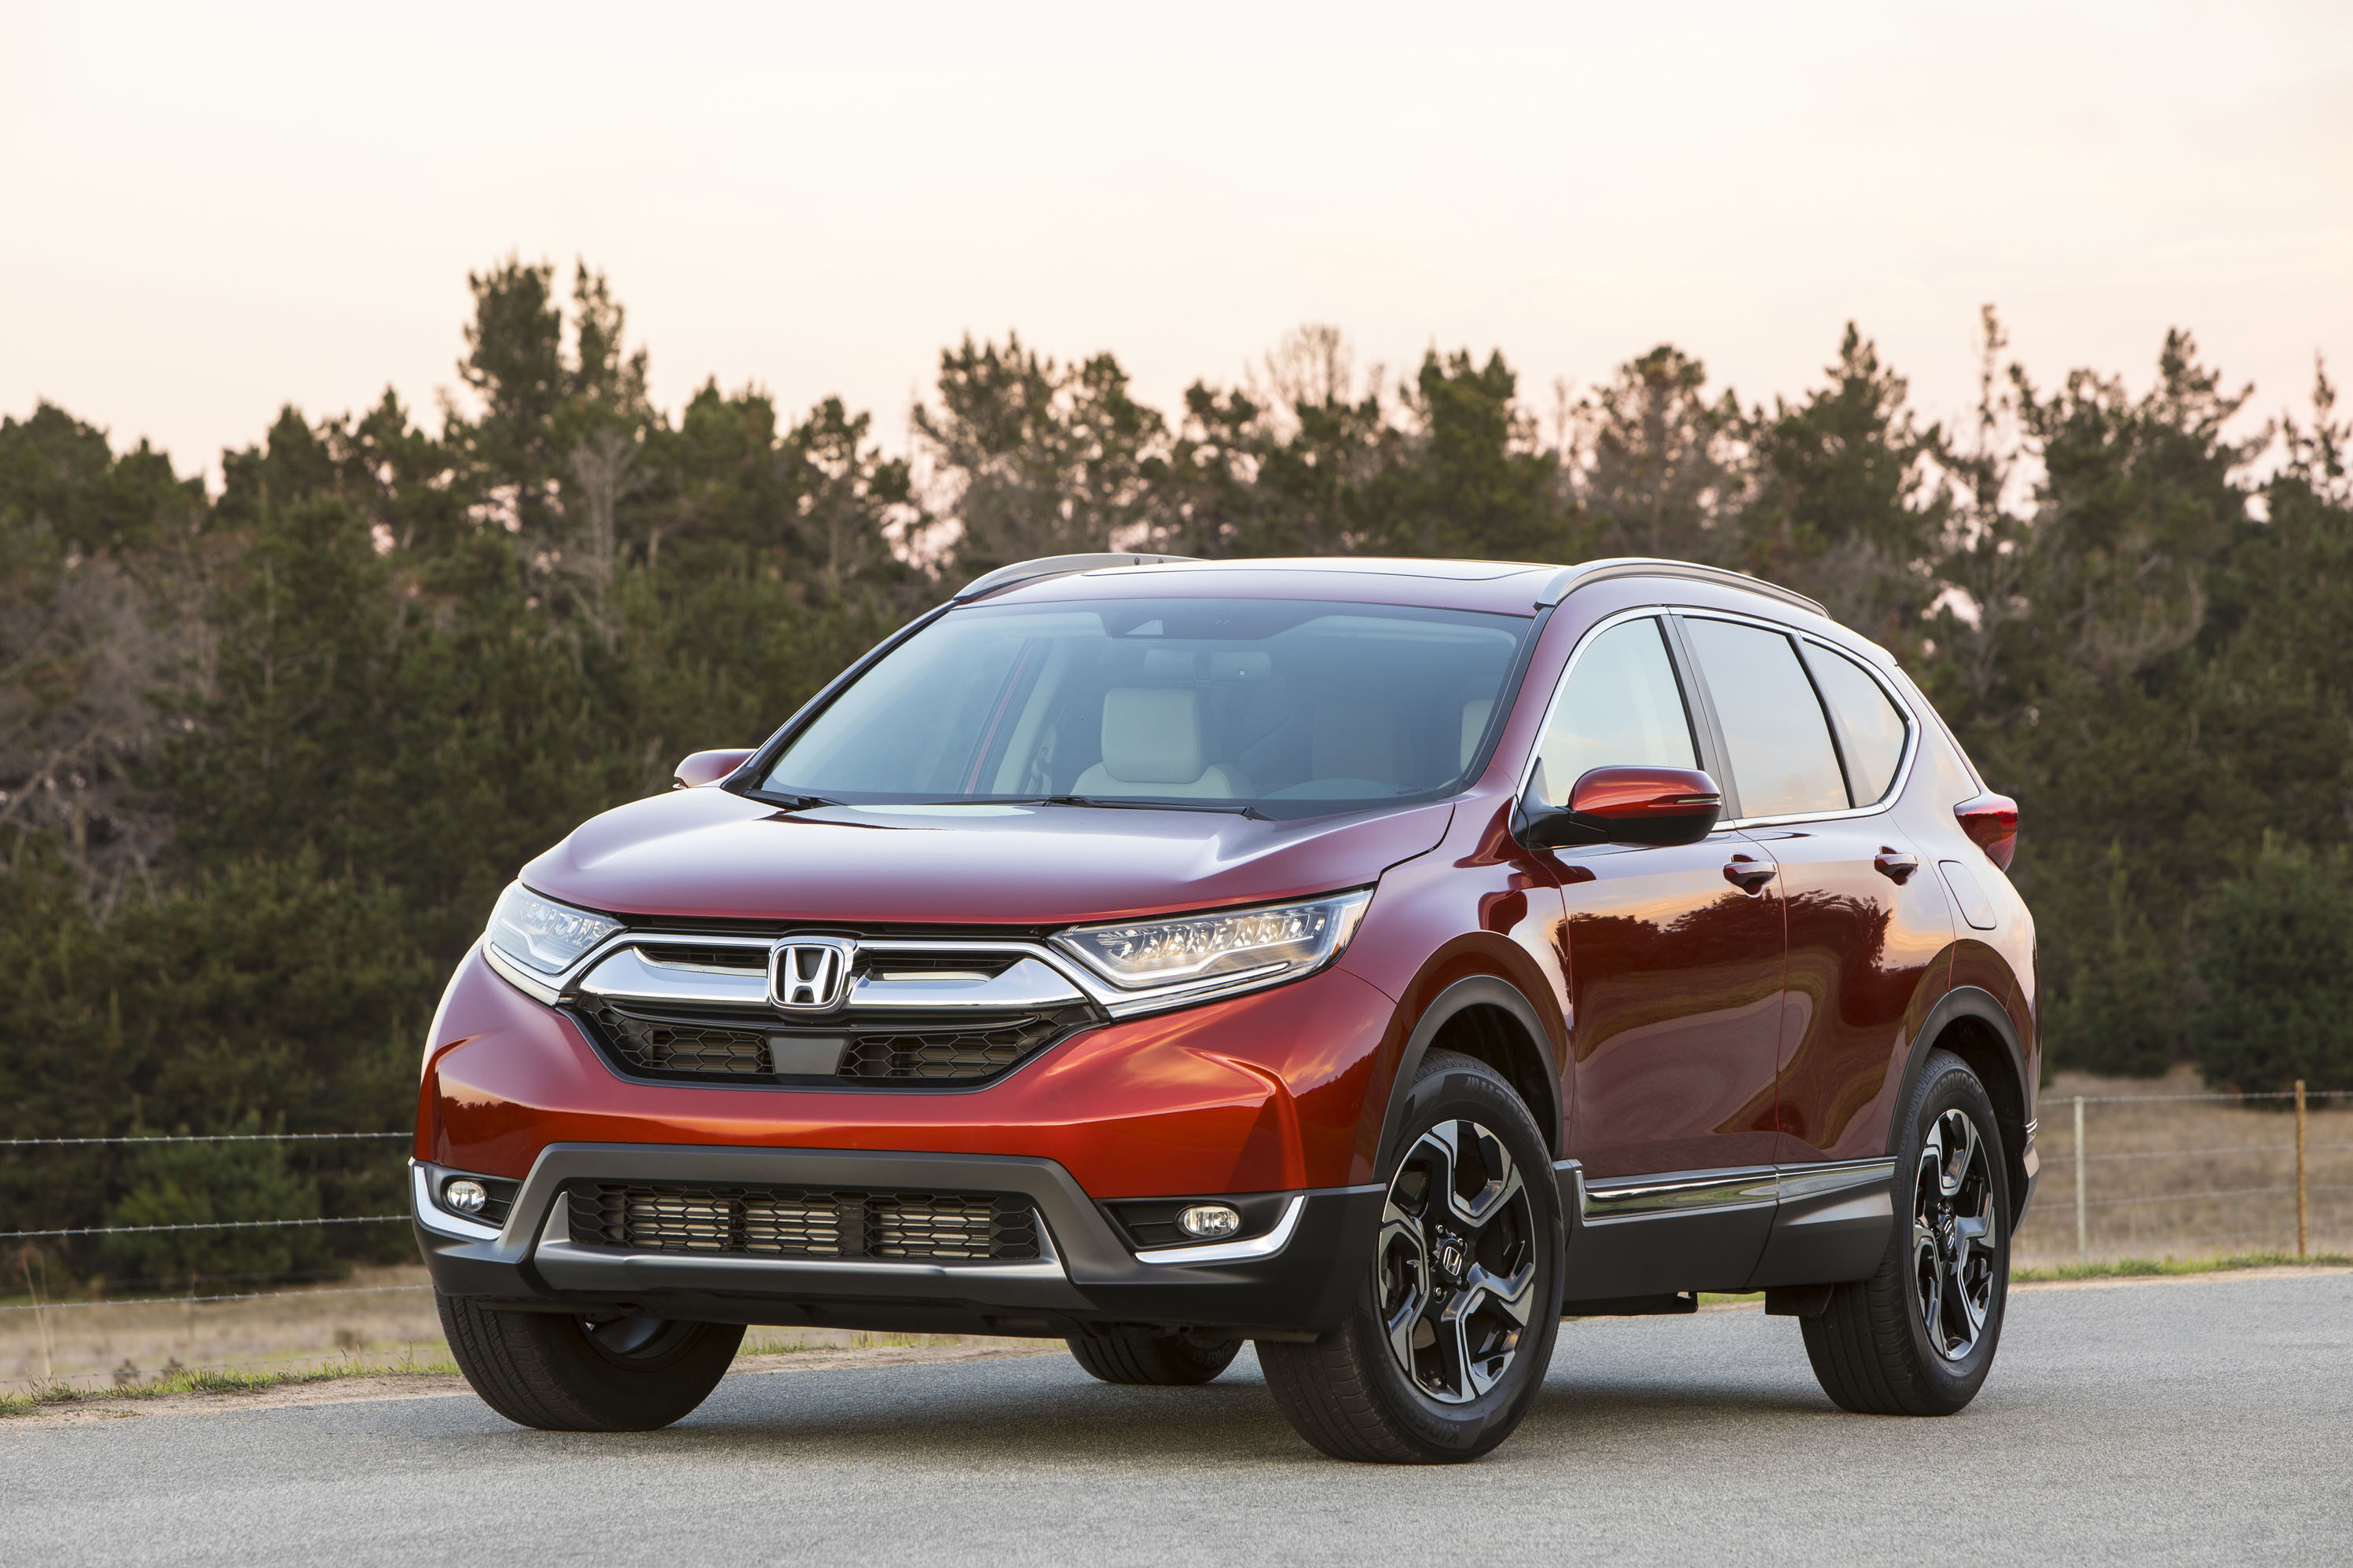 2018 honda cr v safety review and crash test ratings the